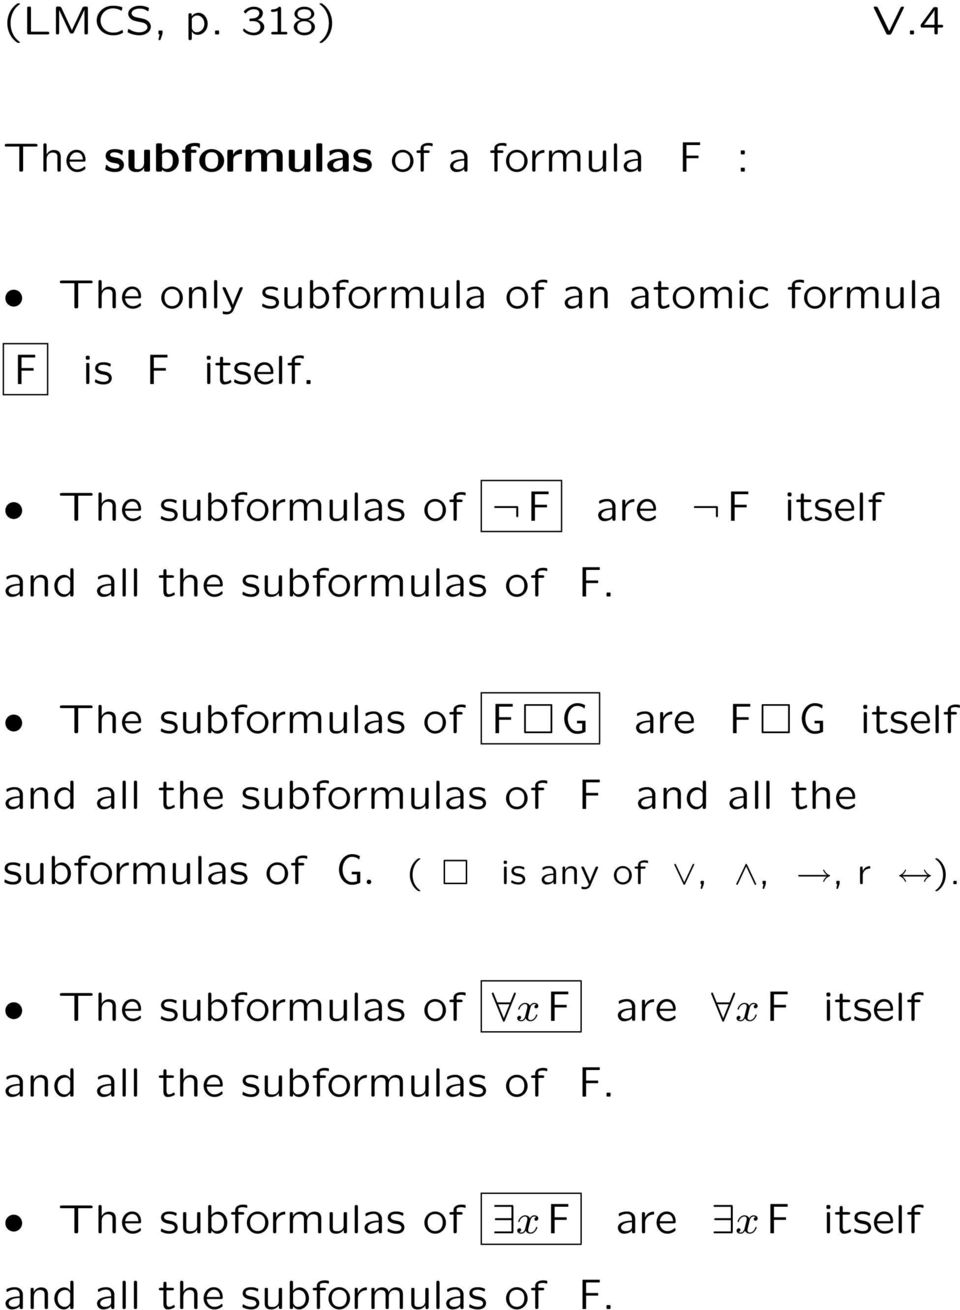 The subformulas of F are F itself and all the subformulas of F.